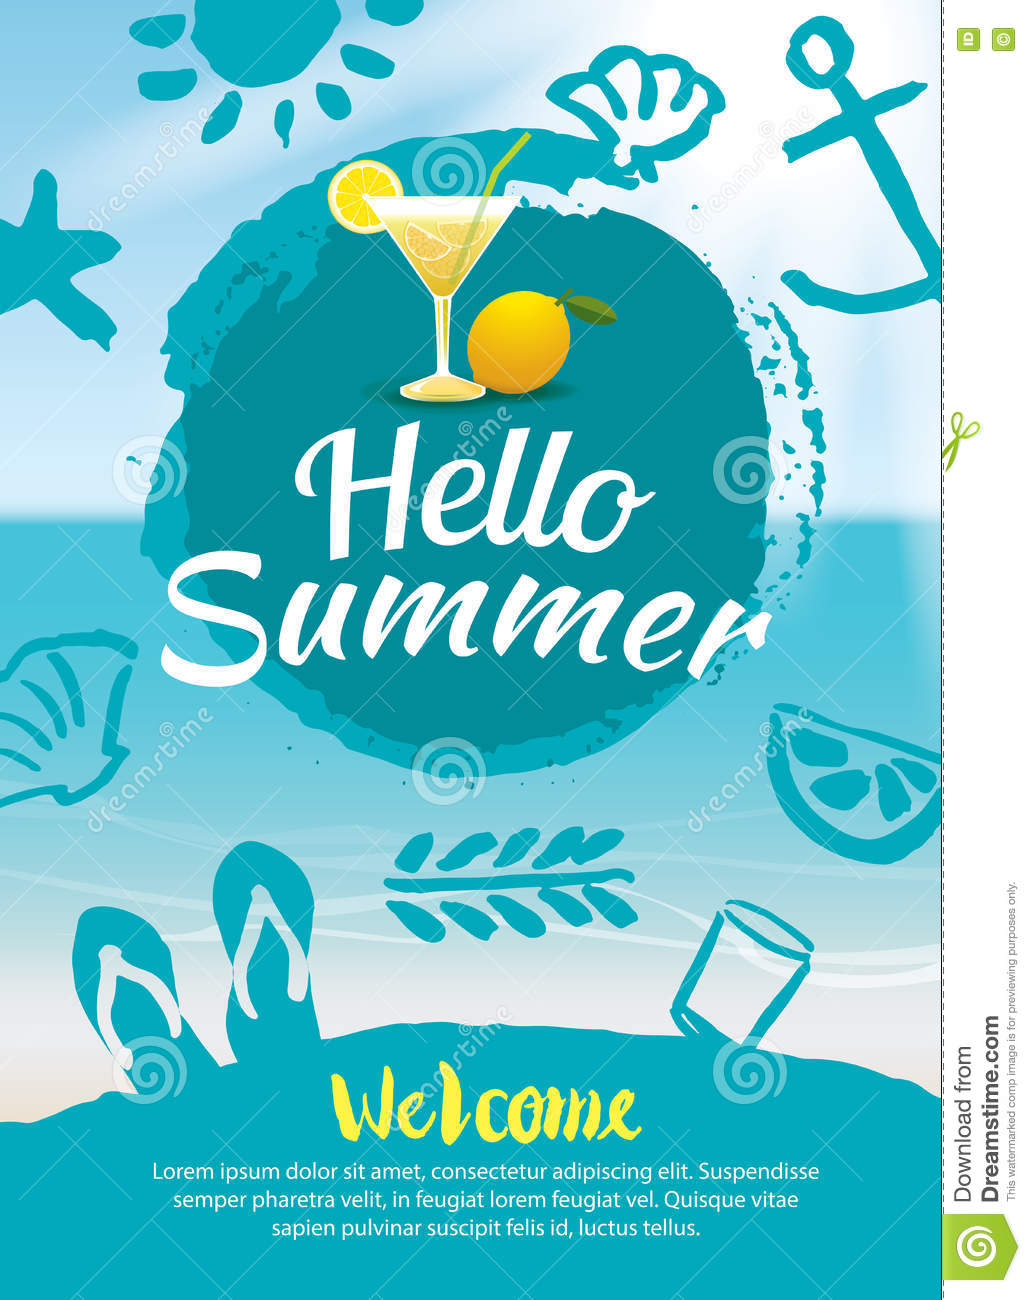 Hello Summer Beach Party Poster Background Stock Vector. Indoor Graduation Party Games. Movie Ticket Invitation Template. Free Printable Flyers. Monthly Appointment Calendar Template. Name Tag Template Free. Menu Board Design. Mardi Gras Birthday Invitations. Phone Call Log Template